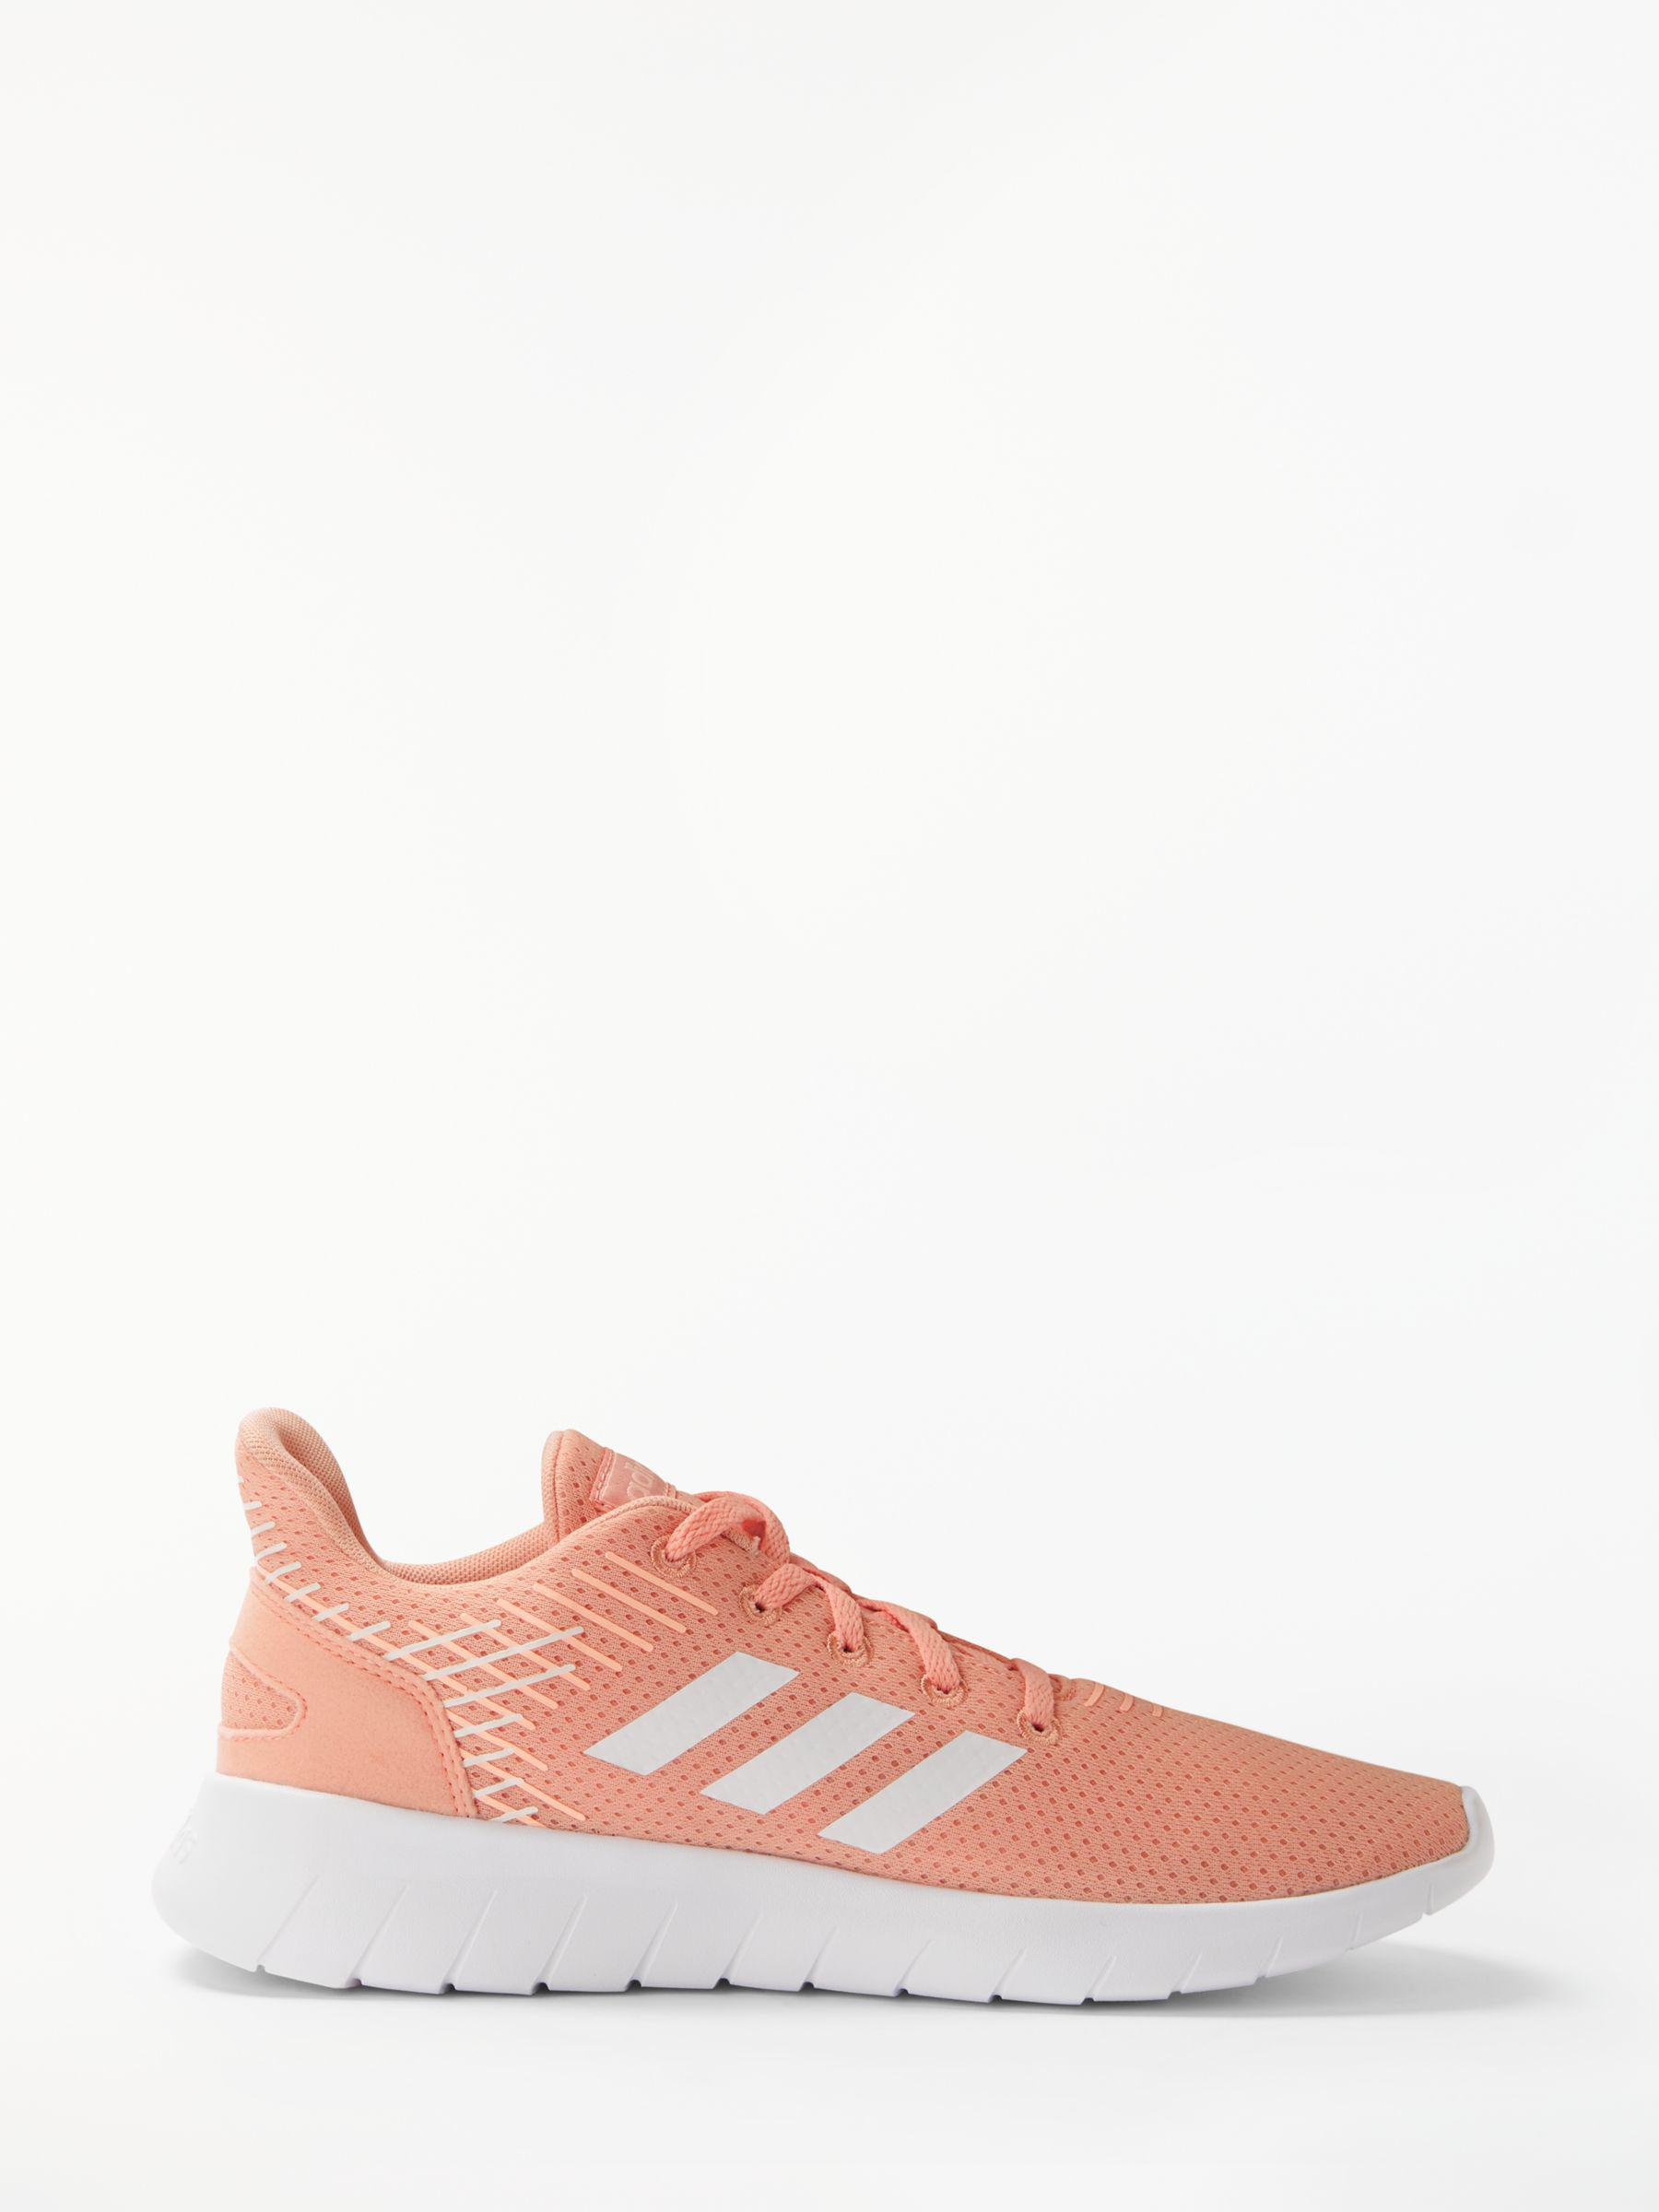 5f930051965f0 adidas. Pink Asweerun Women s Running Shoes. £45 From John Lewis ...